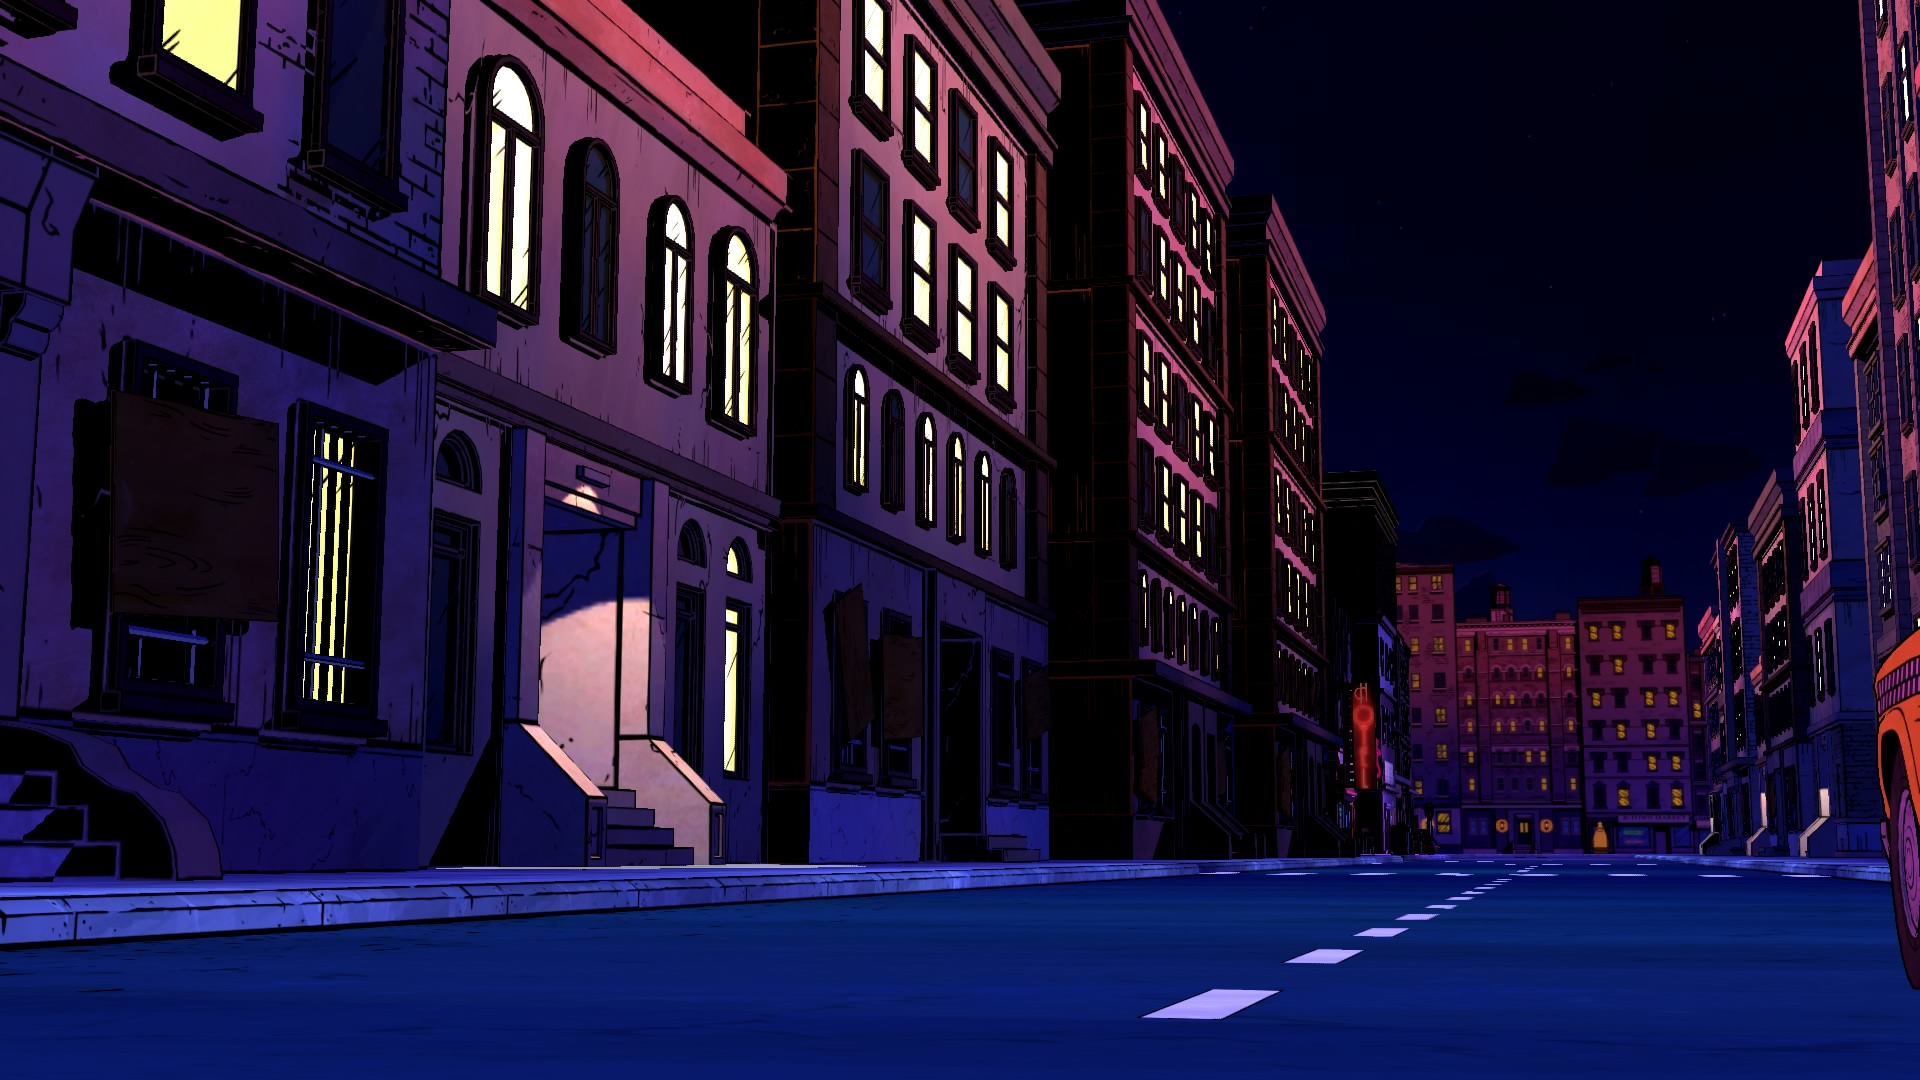 Fableville de nuit - The wolf among us